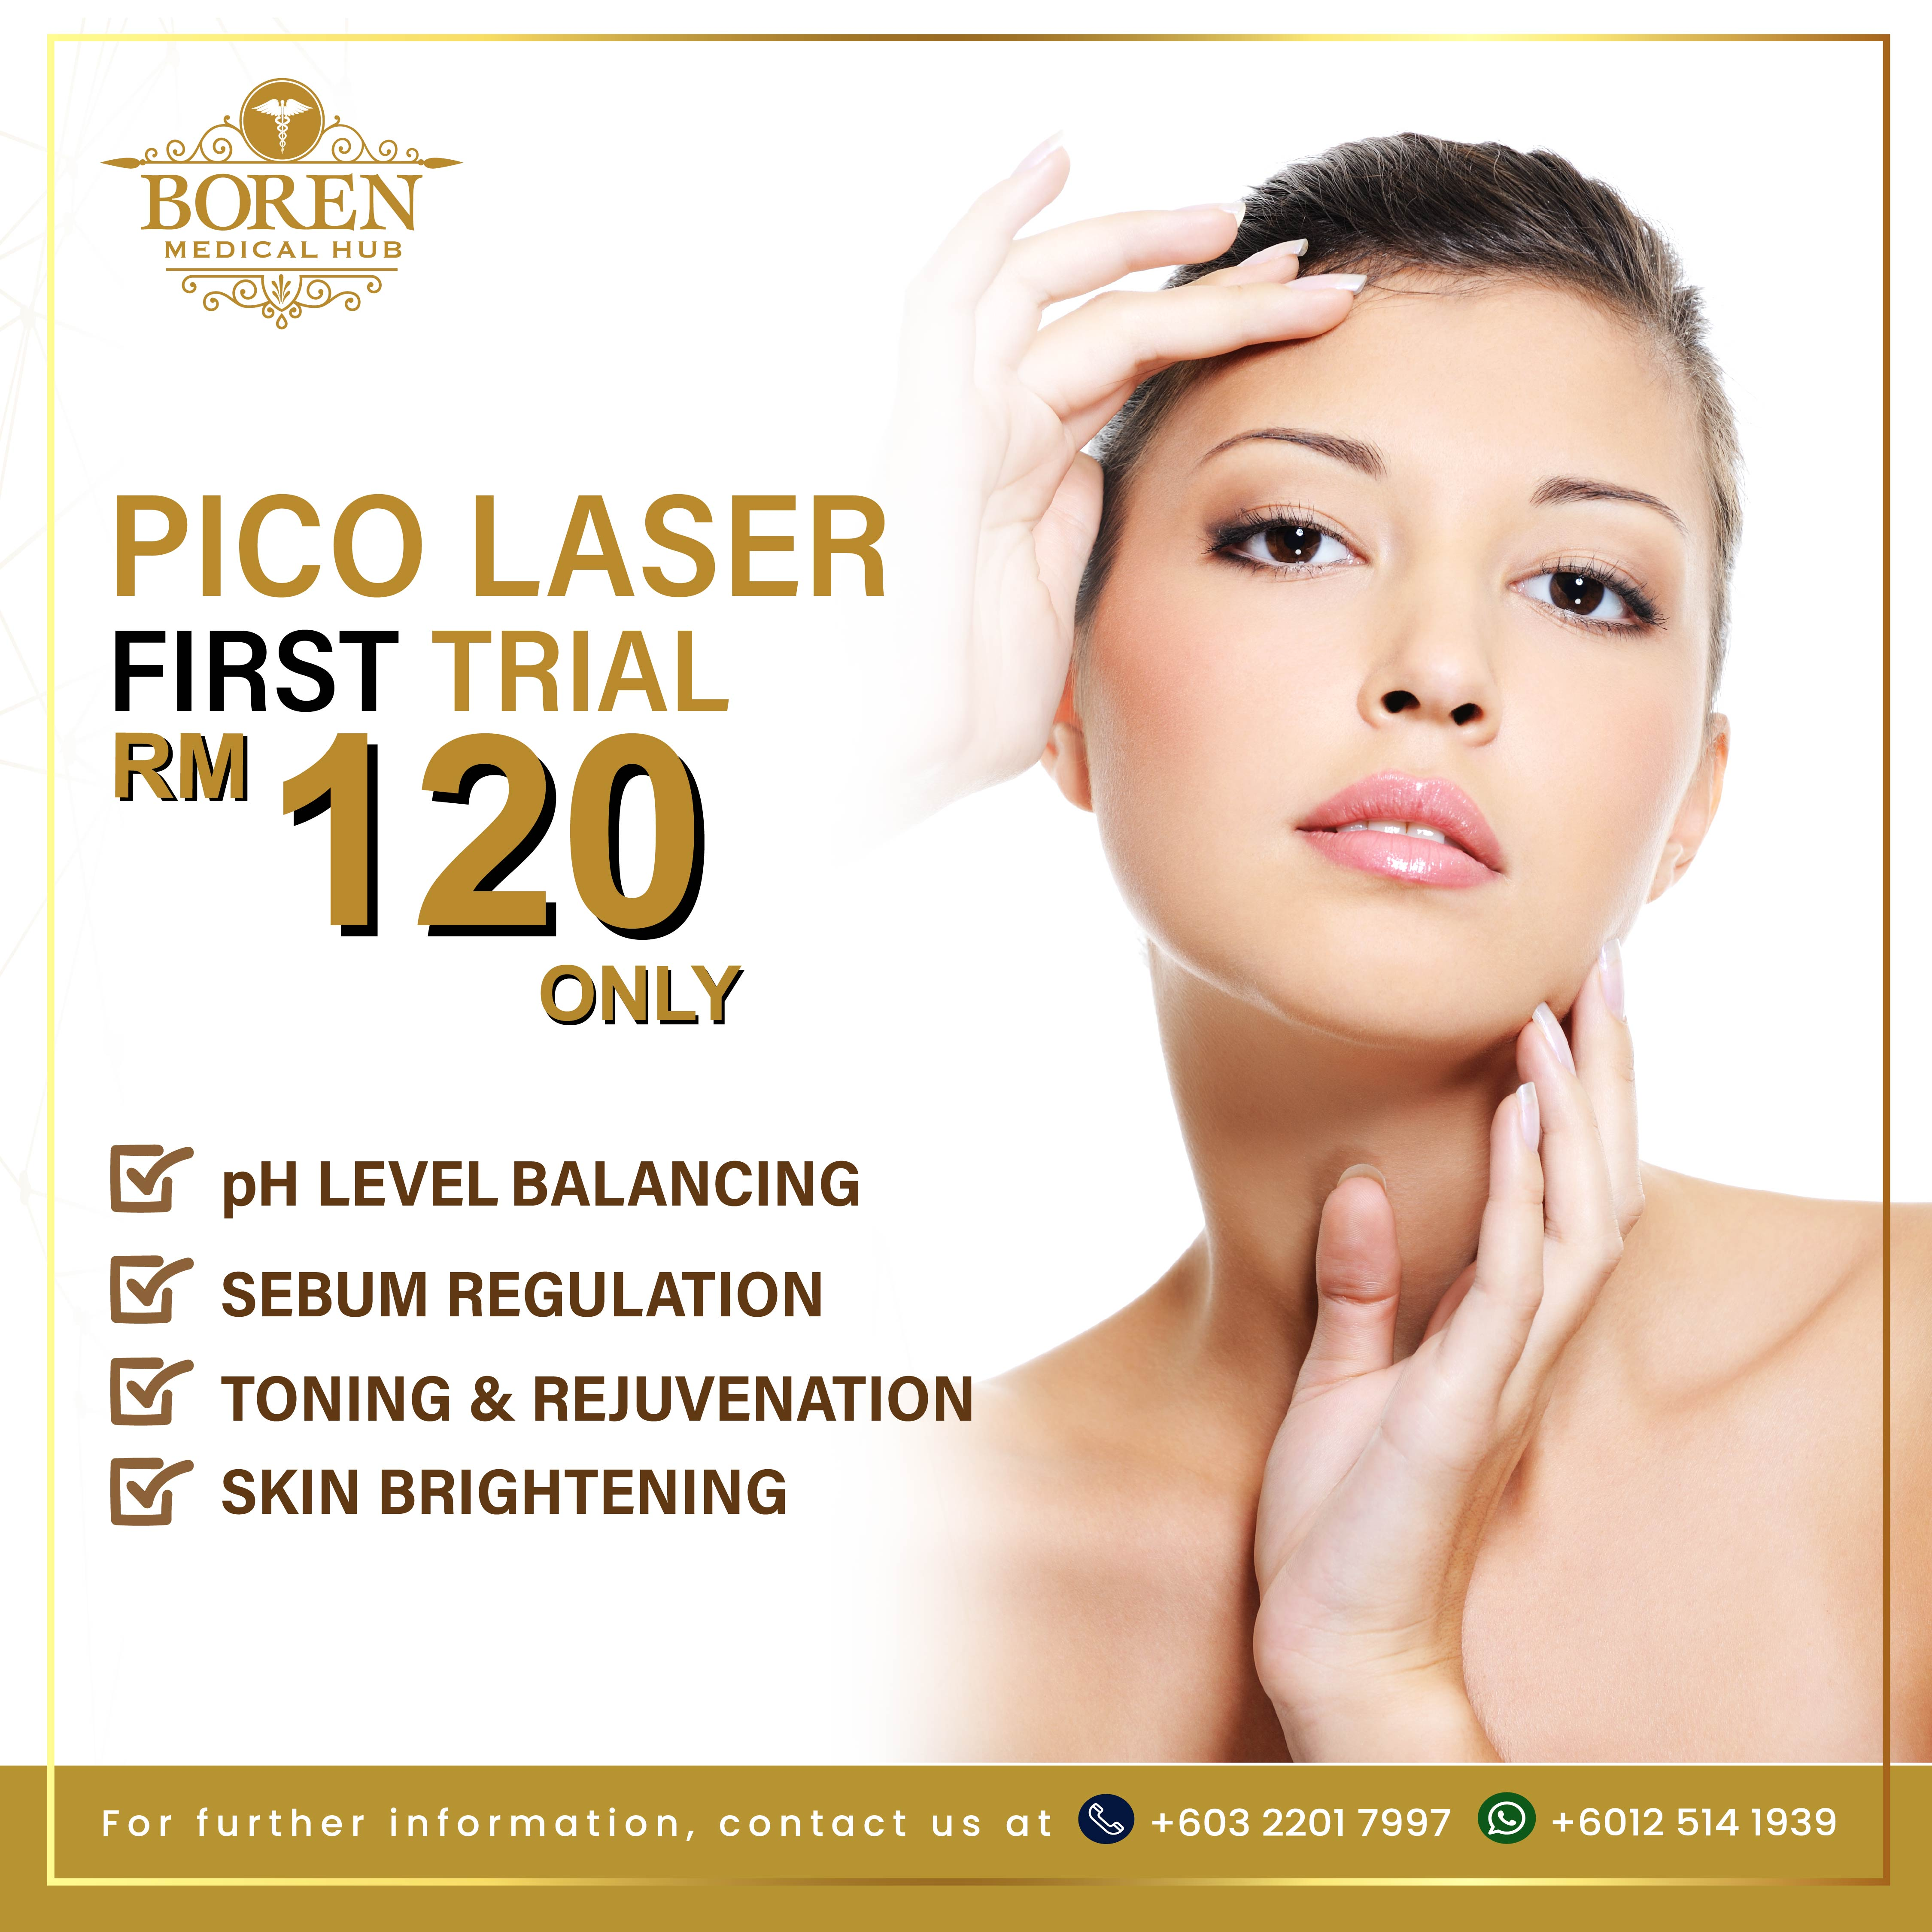 NEW Pico Laser Fist trial (use this)-01-01-01-01